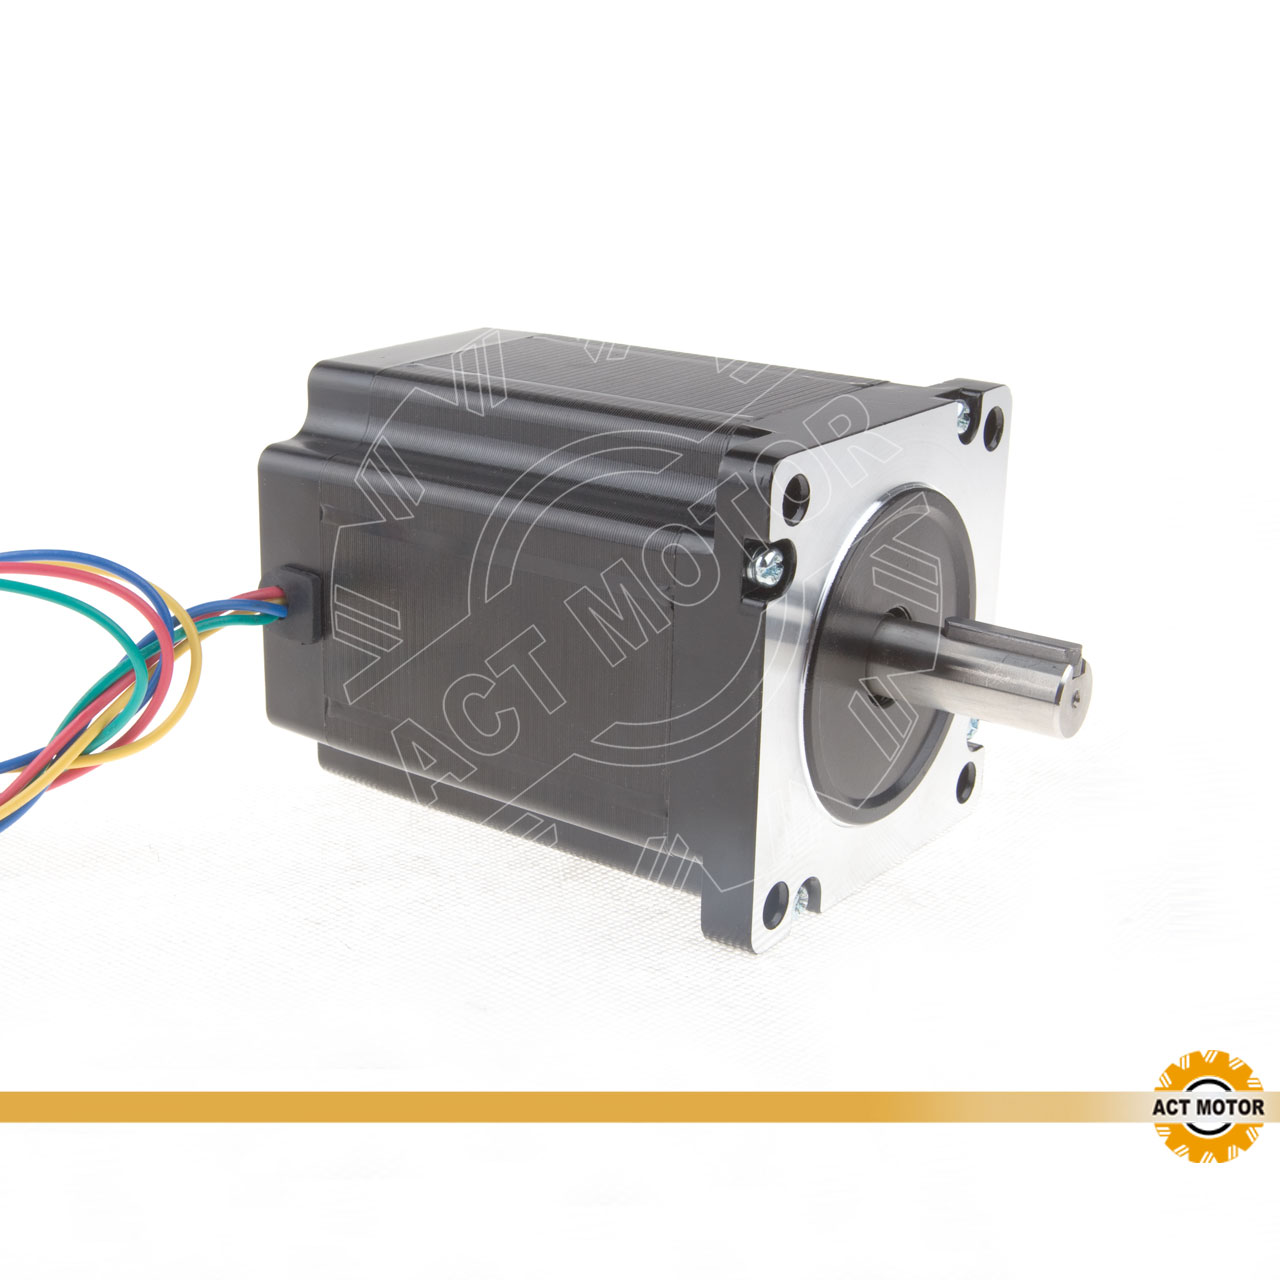 Two-Phase, Four-Phase Hybrid Stepper Motor 17HS3410-02